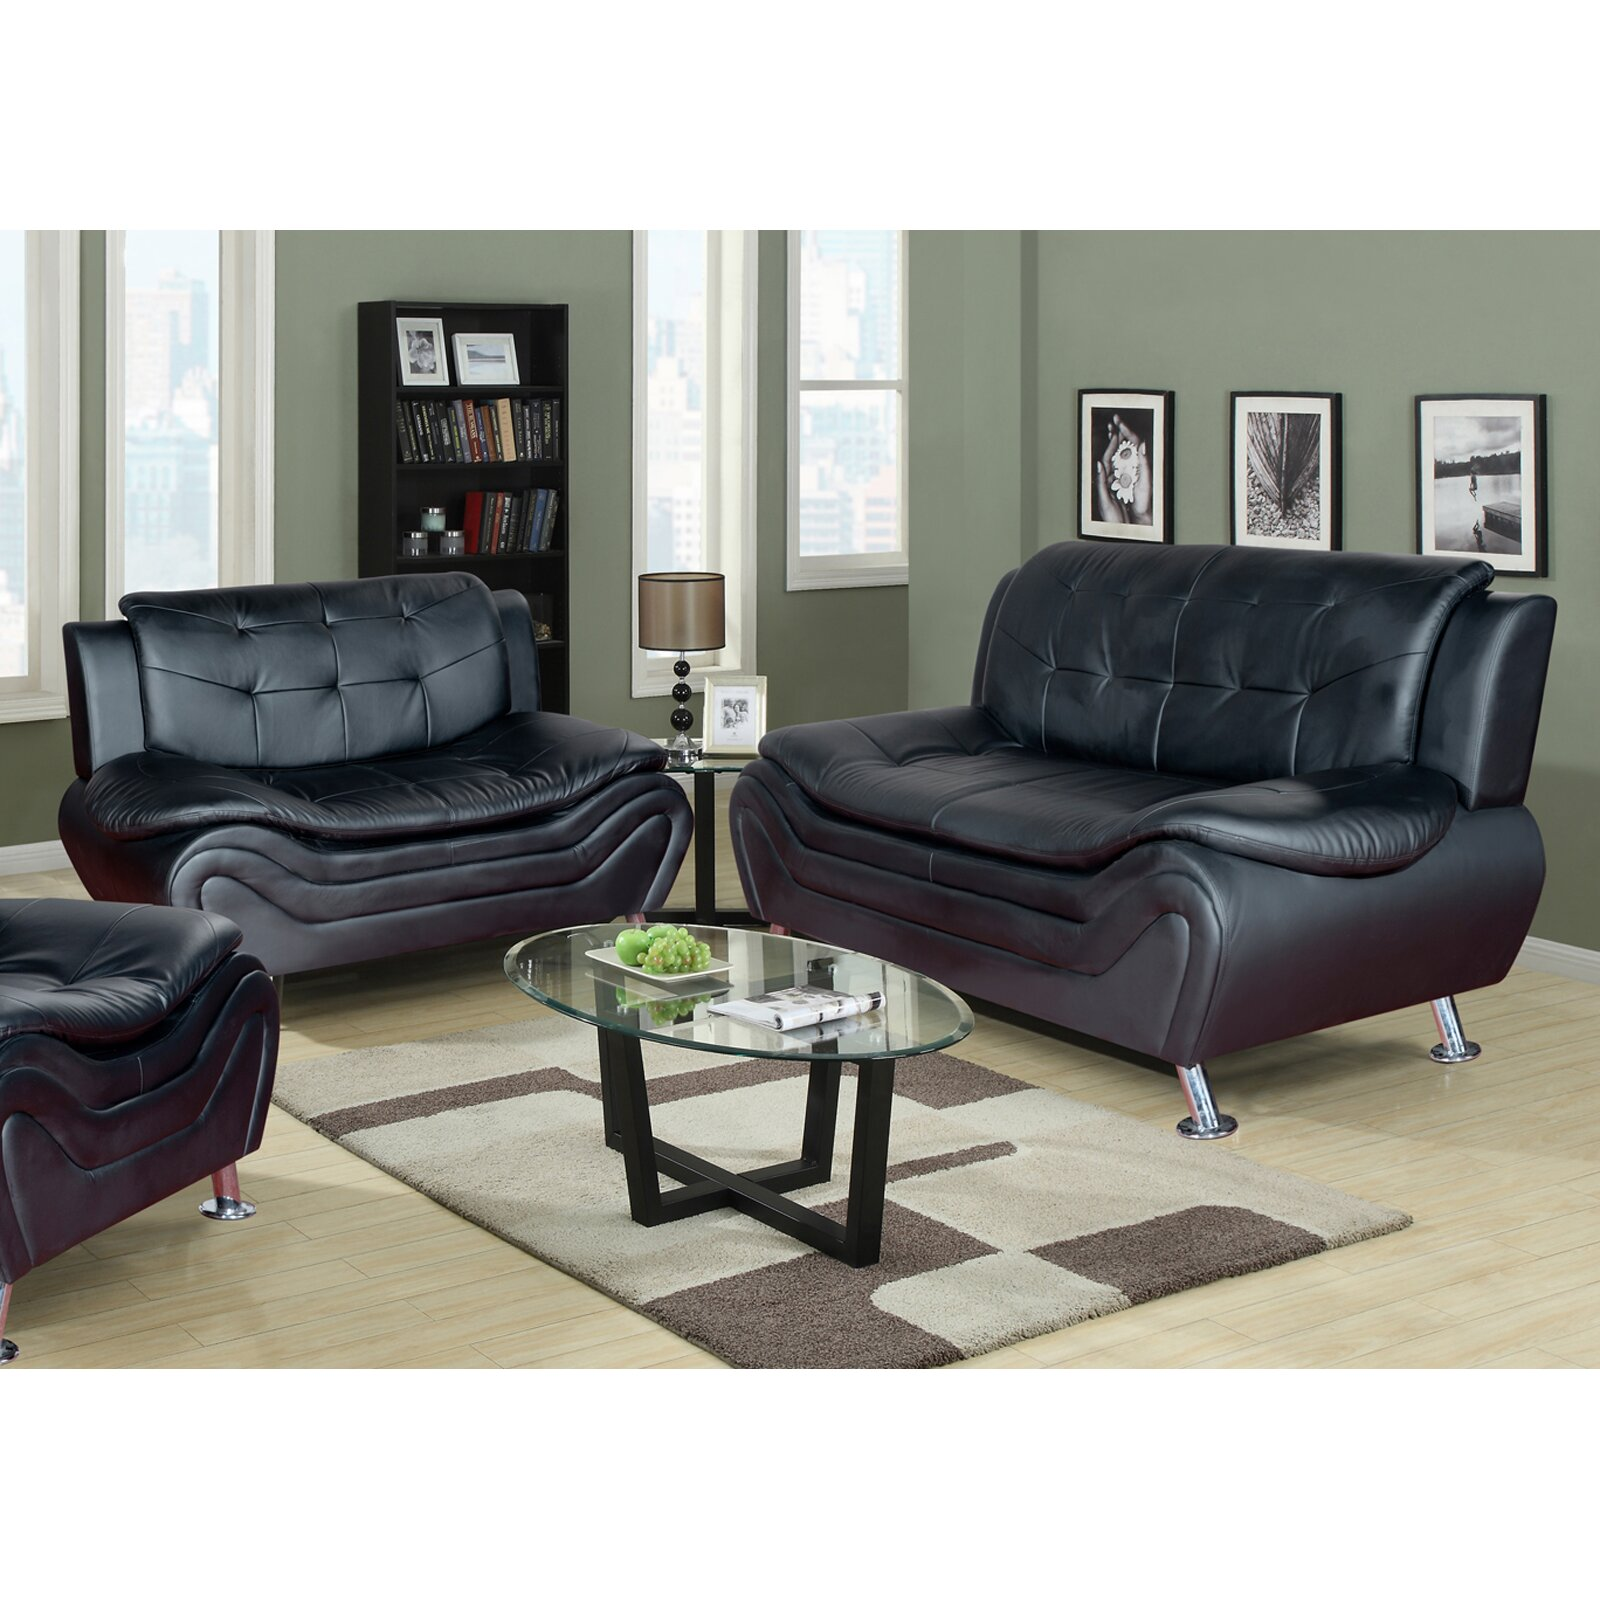 Beverly Fine Furniture Linda Leather Sofa and Loveseat Set ...